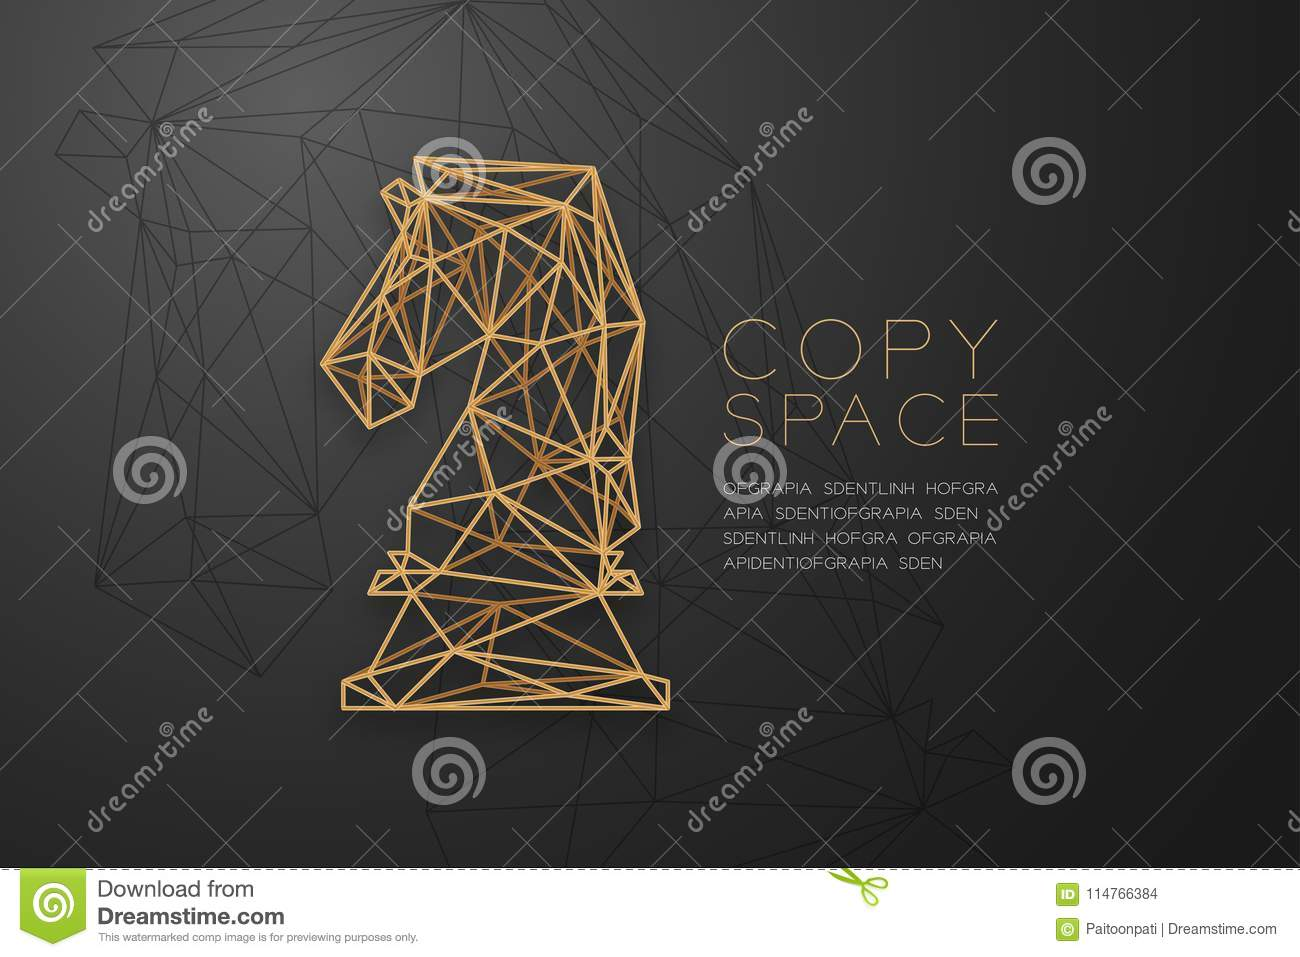 Chess Knight wireframe Polygon golden frame structure, Business strategy concept design illustration